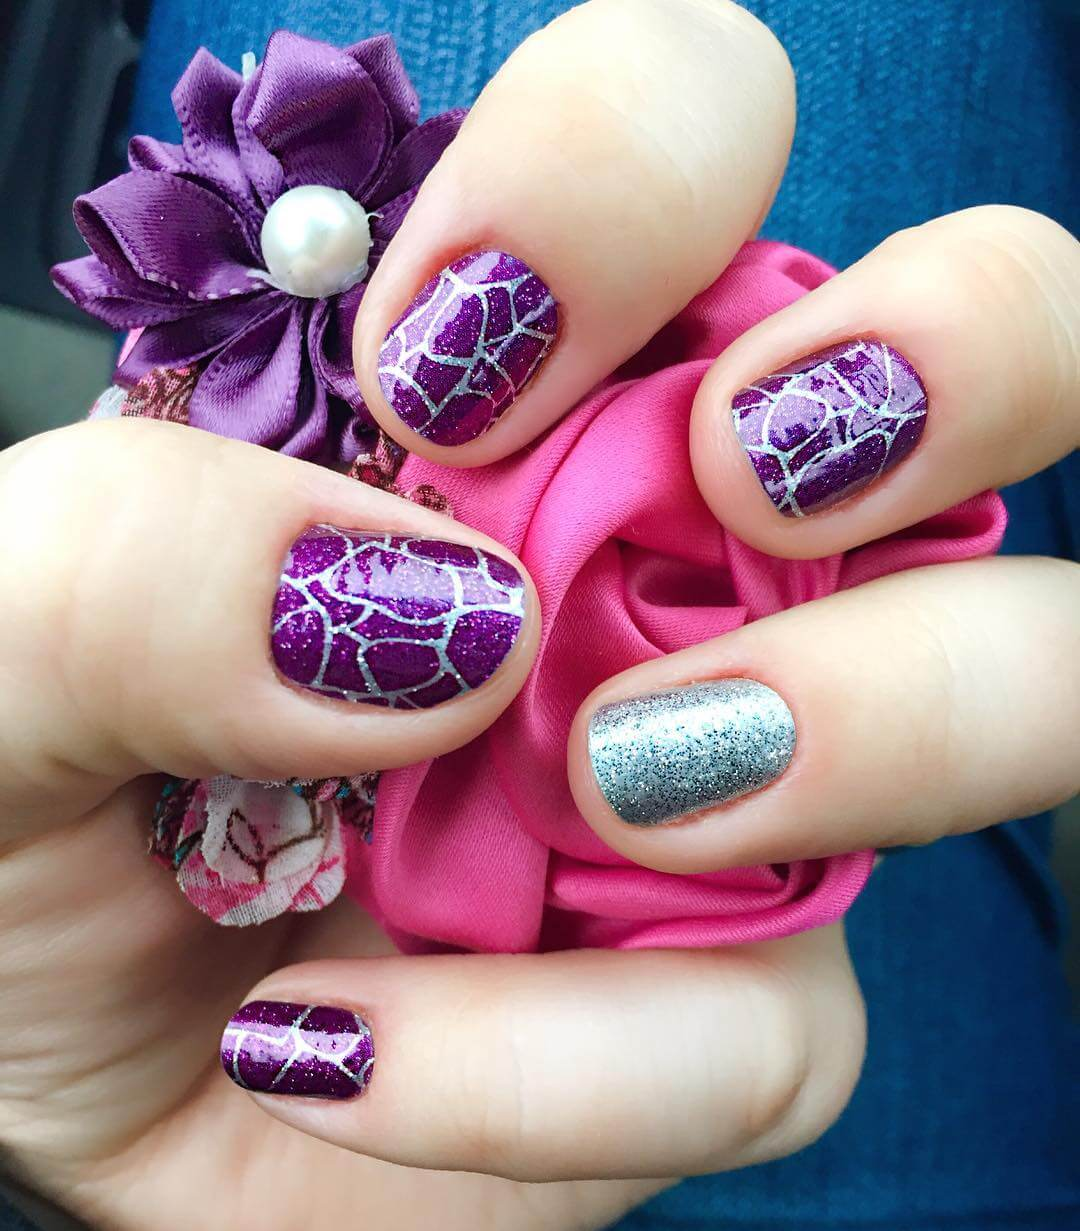 Cool Nail Art: 28+ Diy Nail Art Designs, Ideas